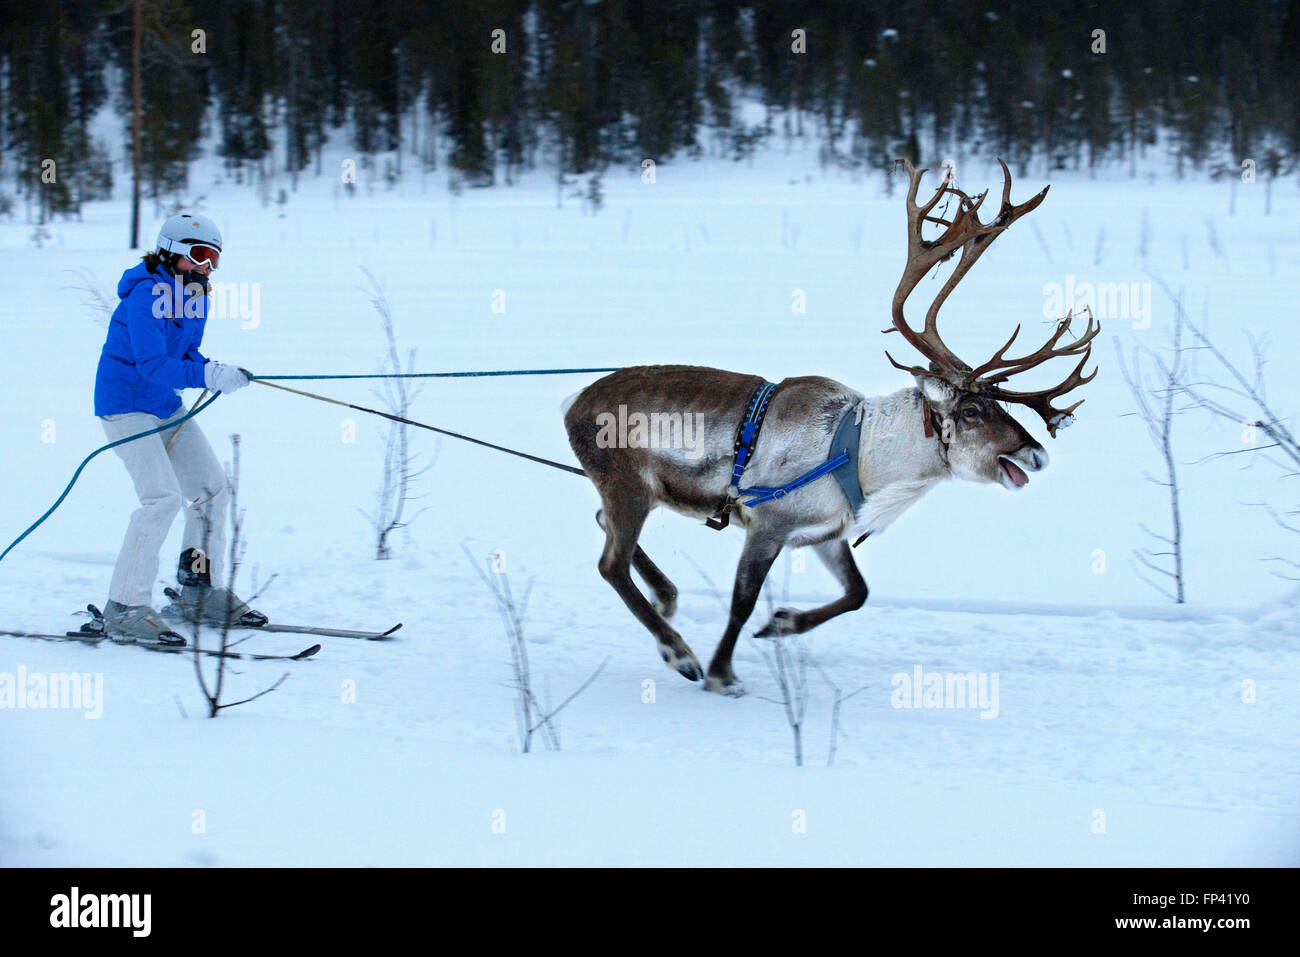 Salla ski resort. Skiing with reindeers. Salla, Lapland, Finland. Race. Winter means reindeer games in some of the - Stock Image